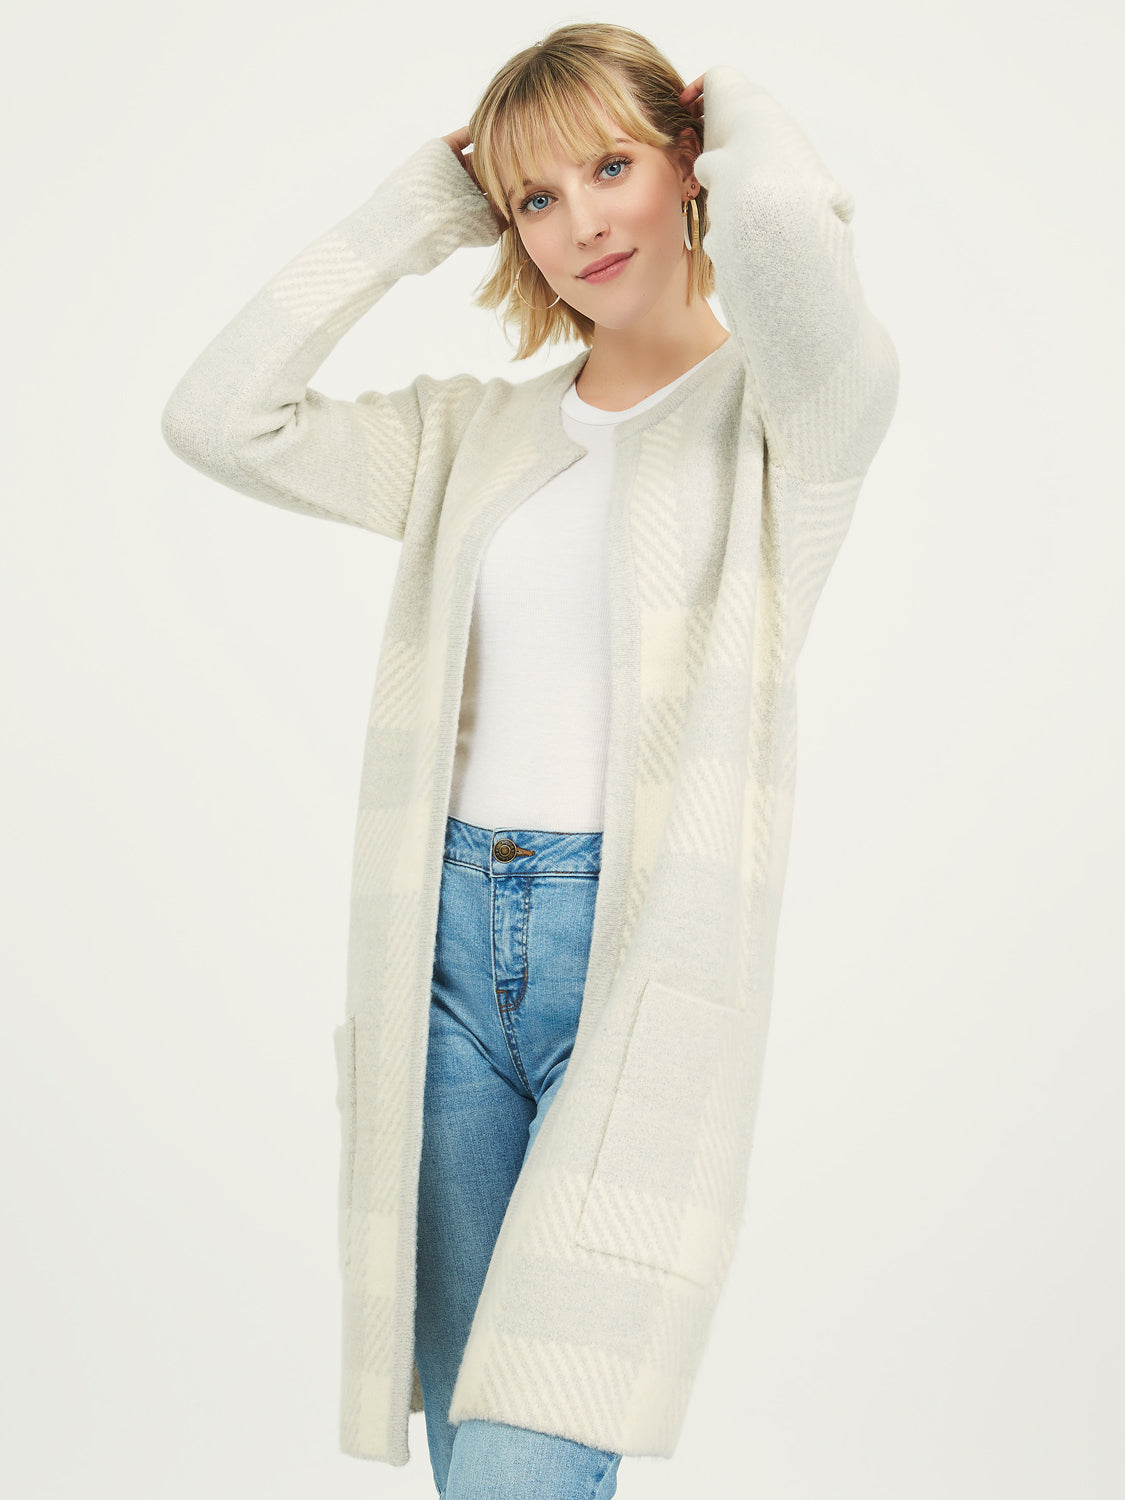 Patterned Knit Sweater Duster